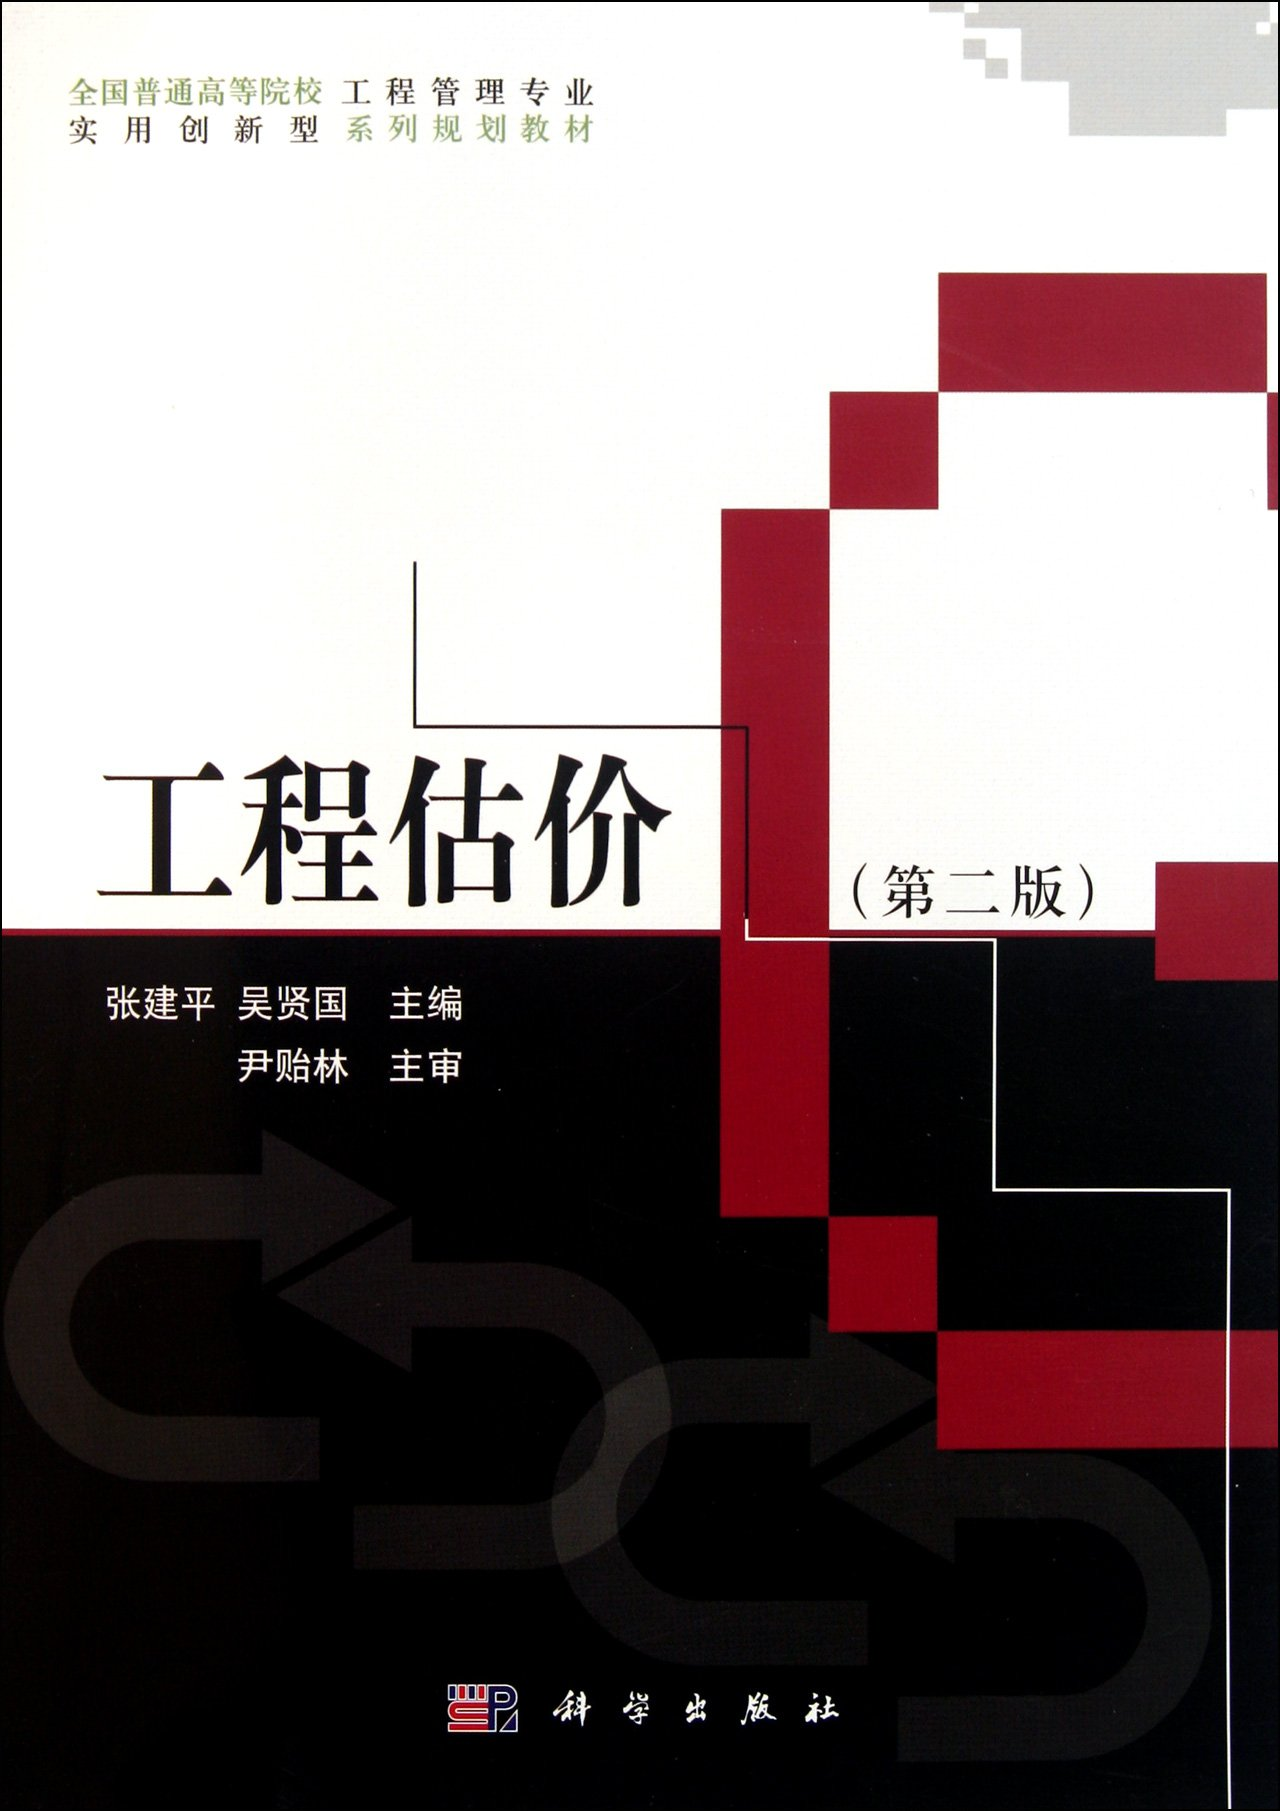 Engineering Valuation (2nd edition of the national institutions of higher learning project management professional practical innovative planning materials) (Chinese Edition) pdf